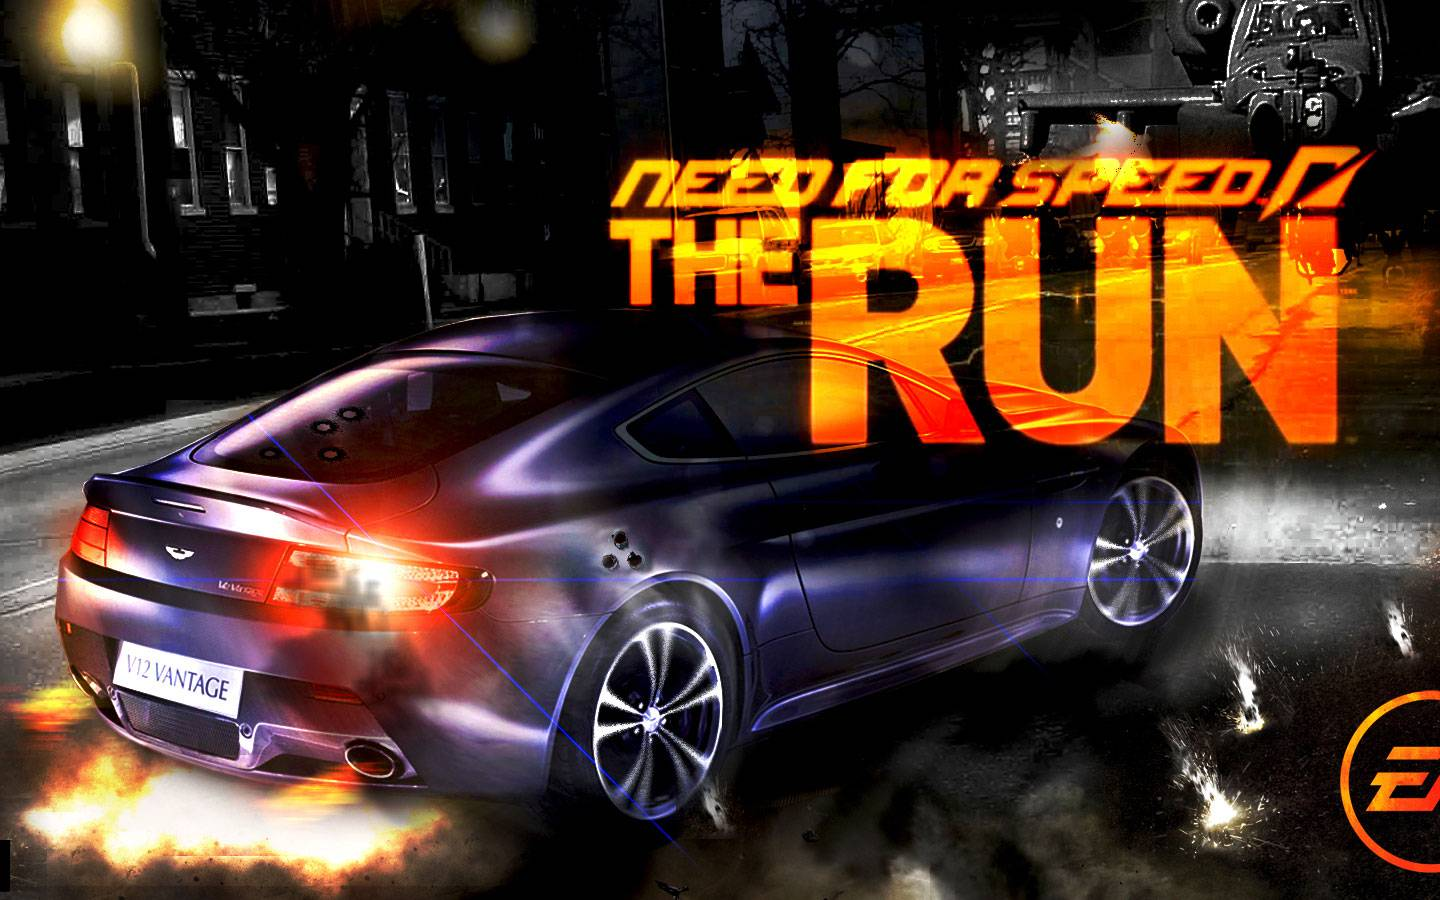 http://4.bp.blogspot.com/-r7qado0DRyk/UDQLDoSdRdI/AAAAAAAACp0/7j5kAOOre94/s1600/need-for-speed-the-run-wallpaper-hd-1080p.jpg